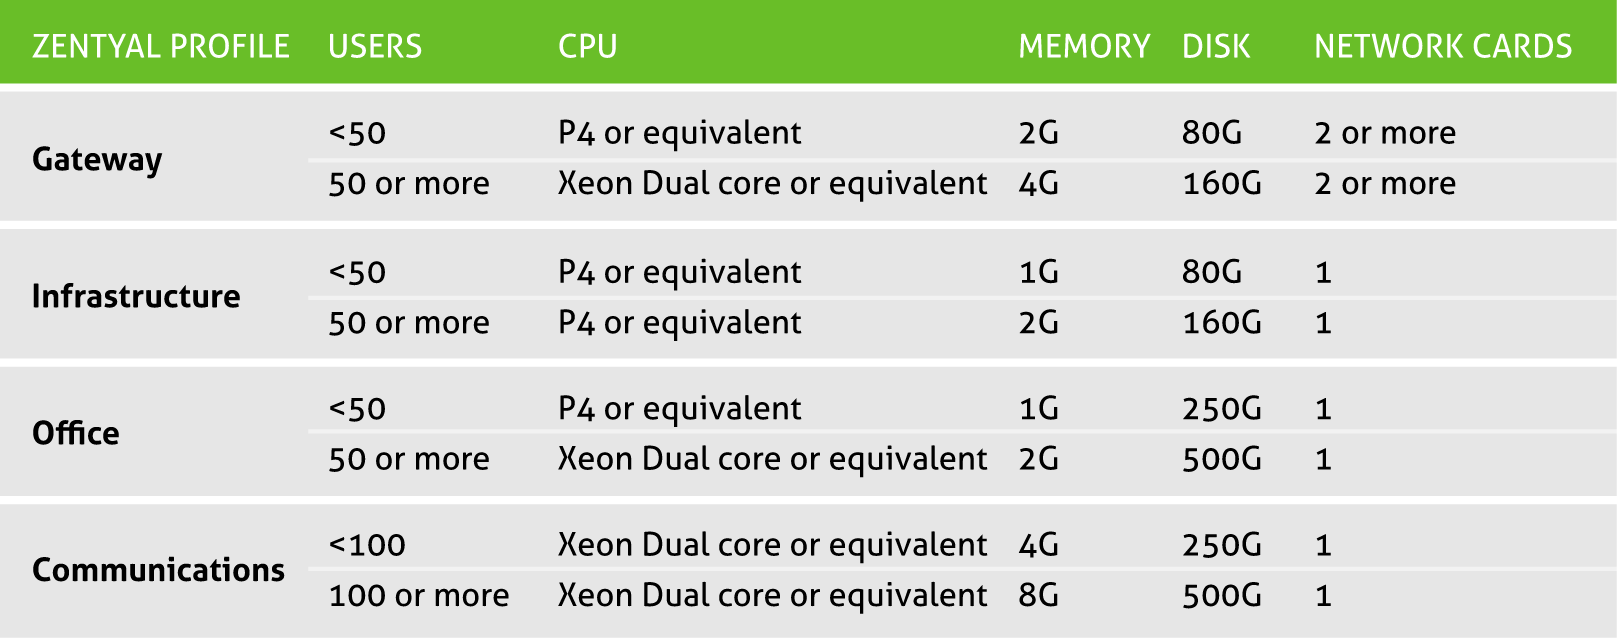 Table showing Zentyal processor and RAM requirements depending on use and users.